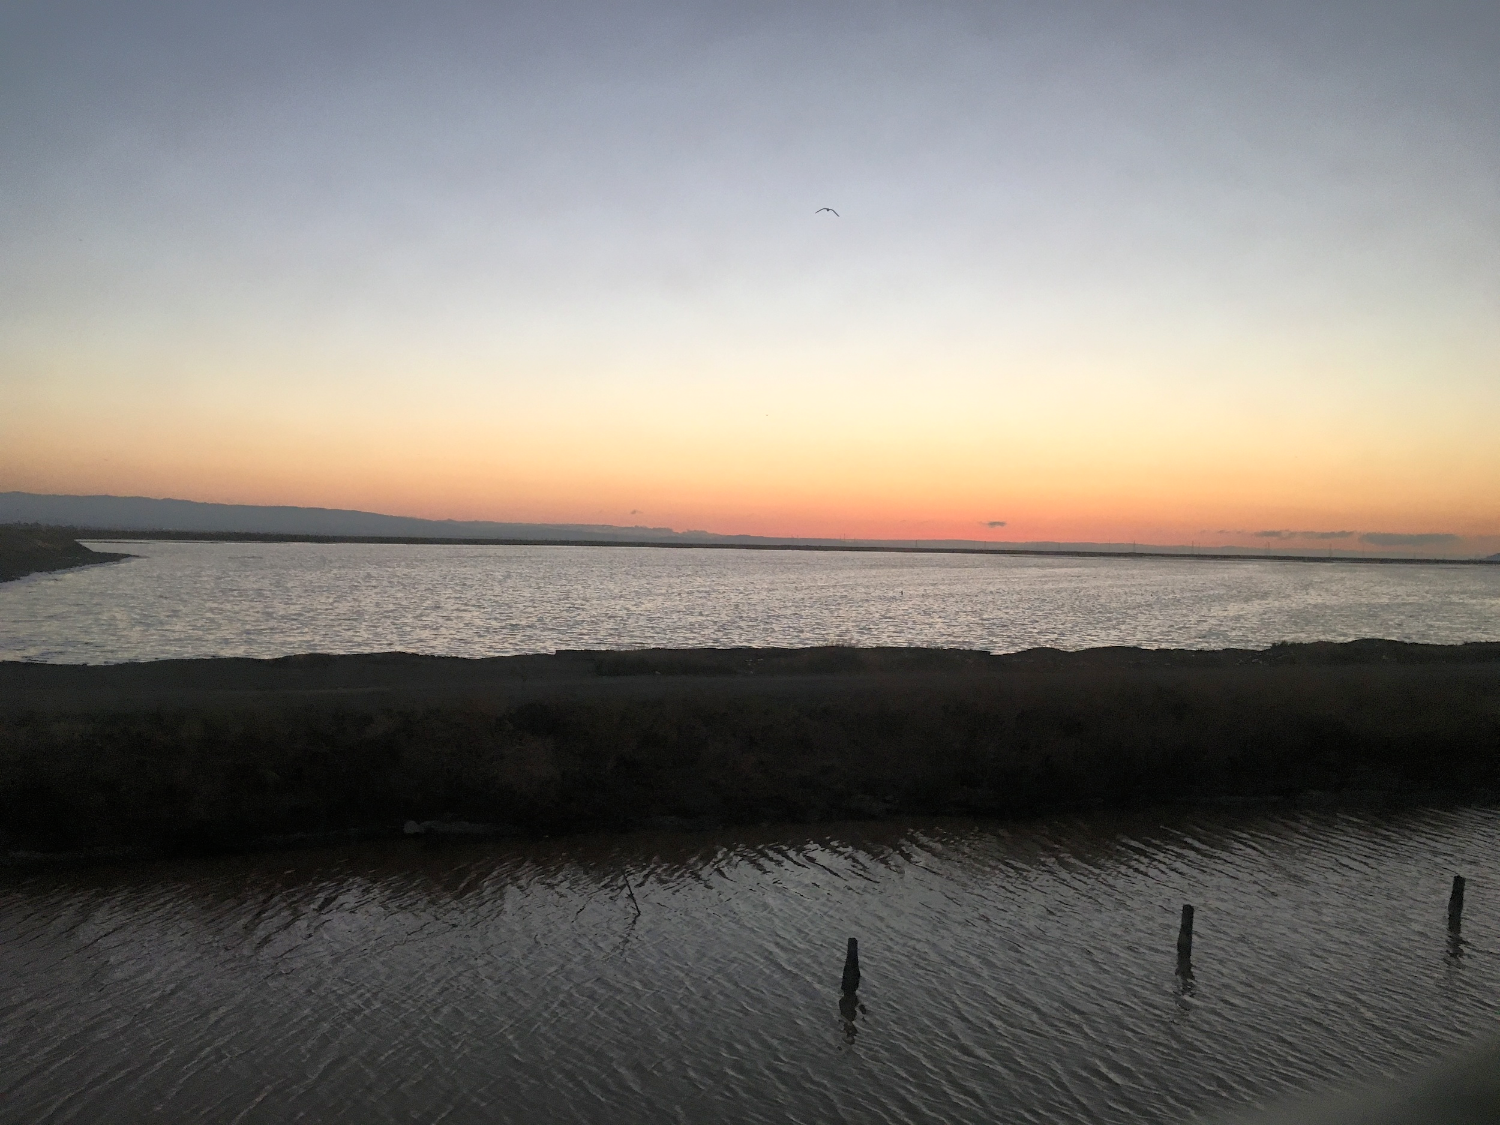 Tidal flats in the South Bay through the train window